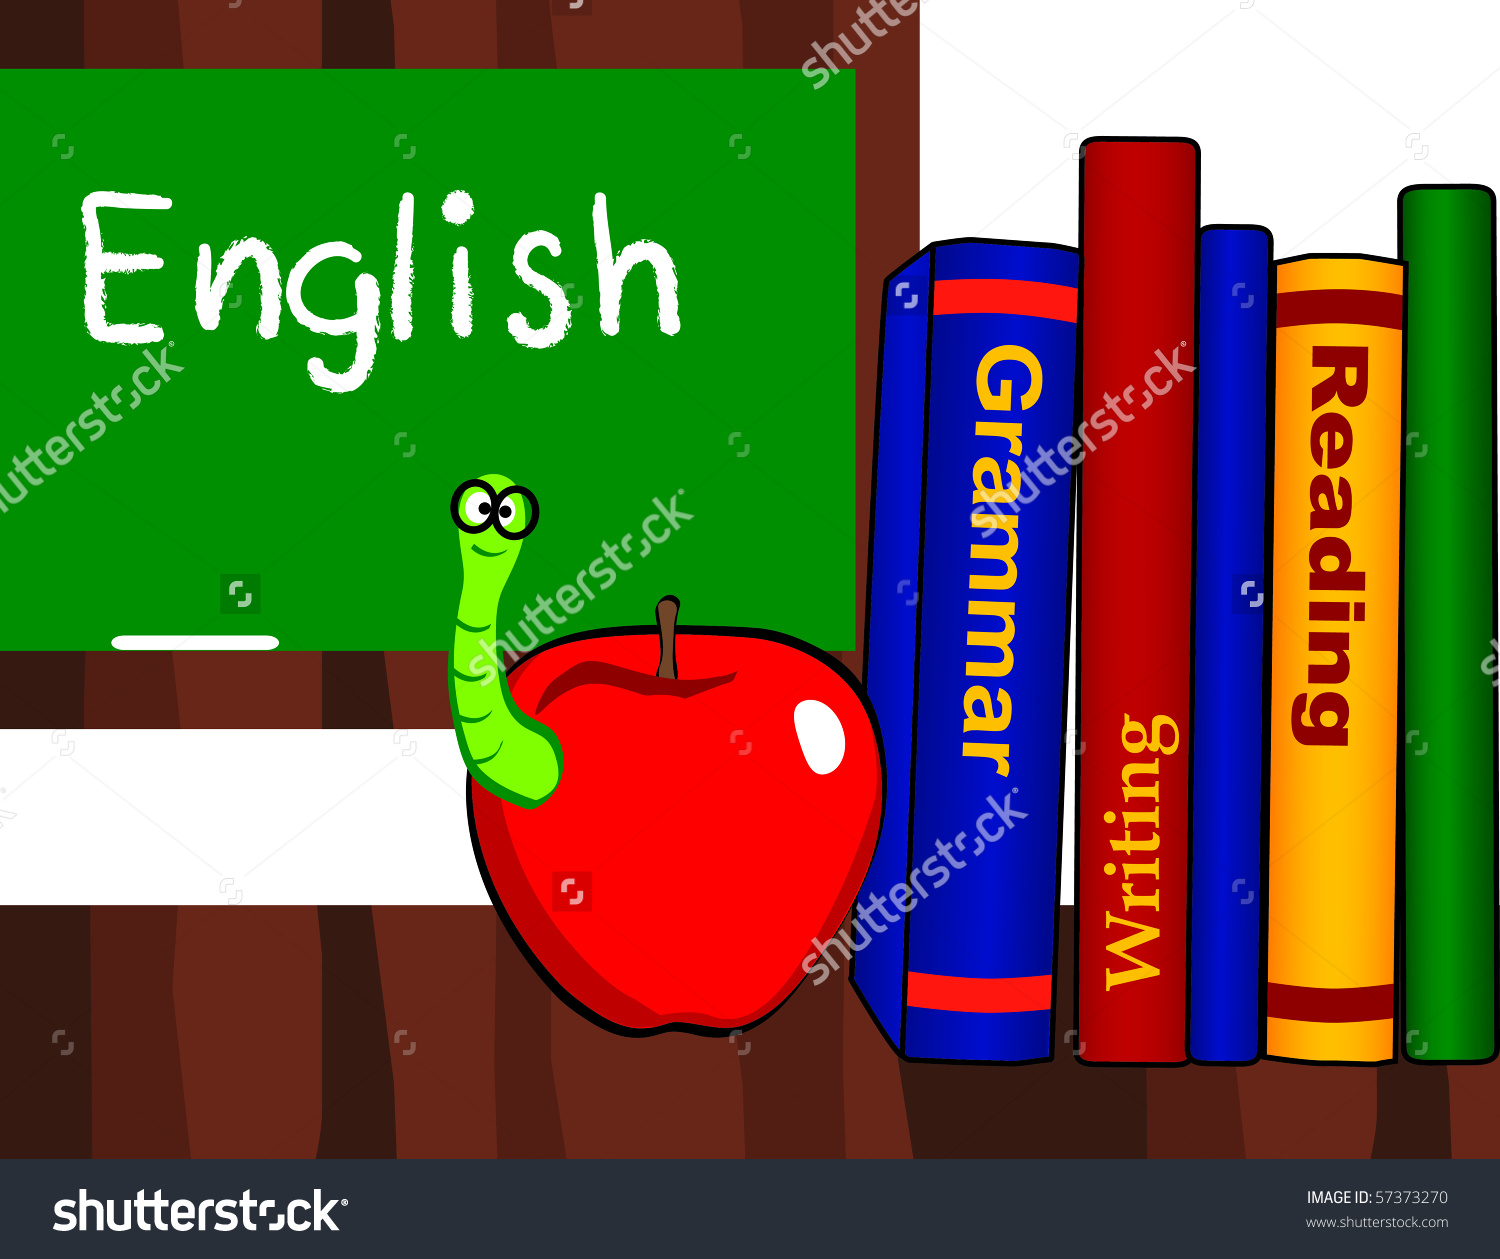 Clipart English Class English. Save to a-Clipart English Class English. Save to a lightbox-11